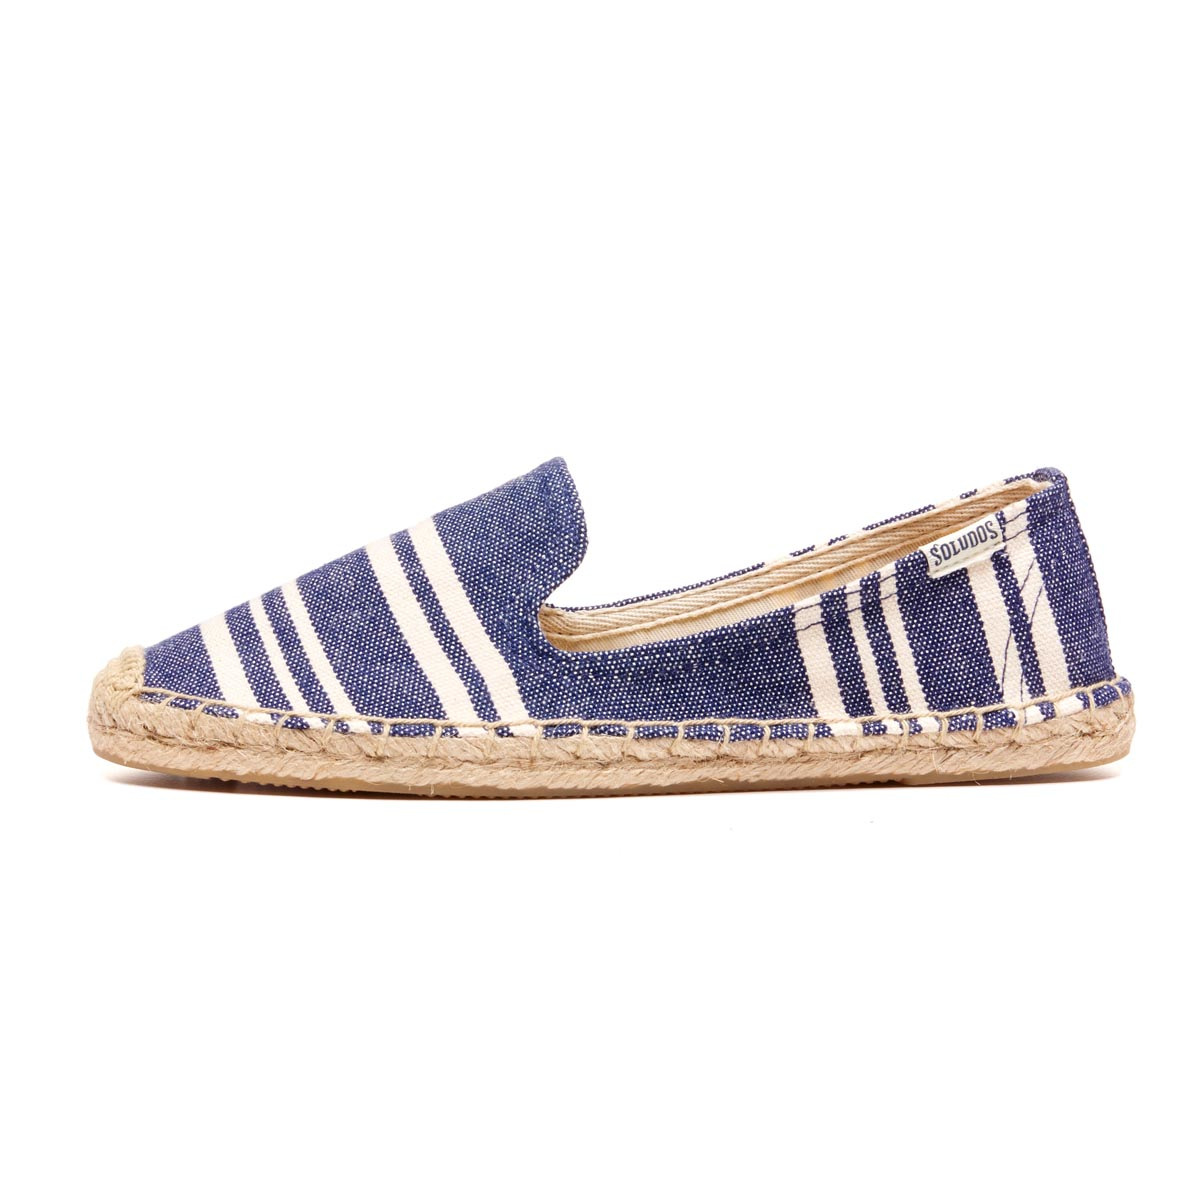 01953bf01 Soludos Candy Stripe Espadrilles in Blue - Lyst